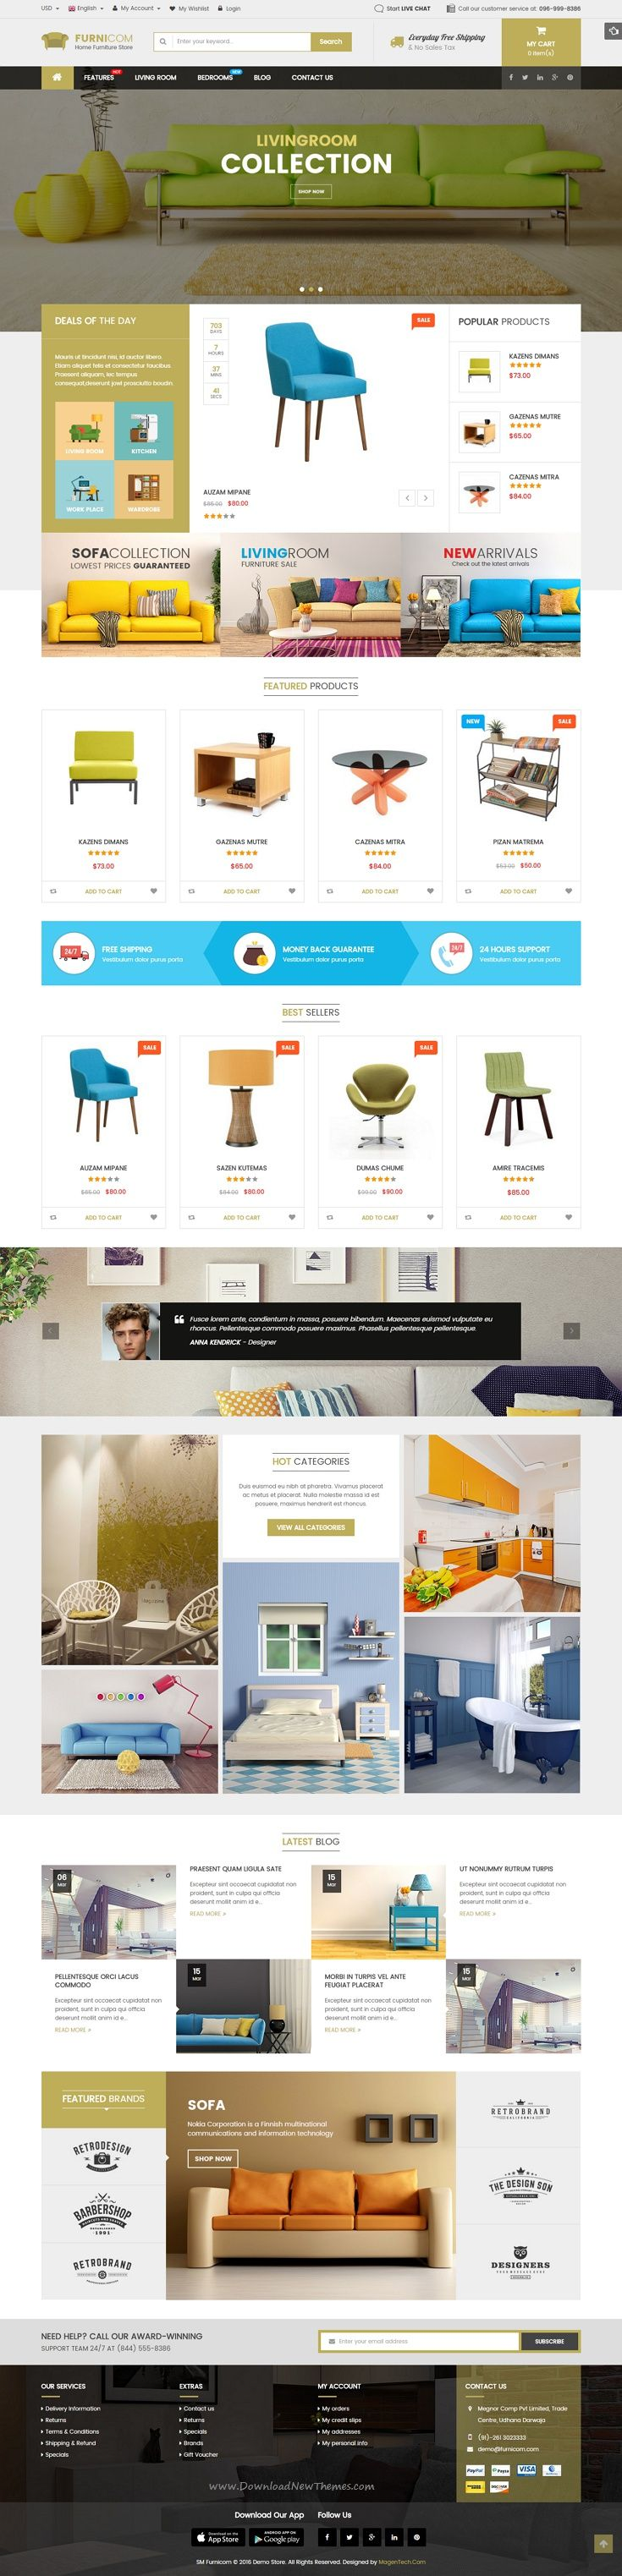 516 Best Ecommerce Website Images On Pinterest